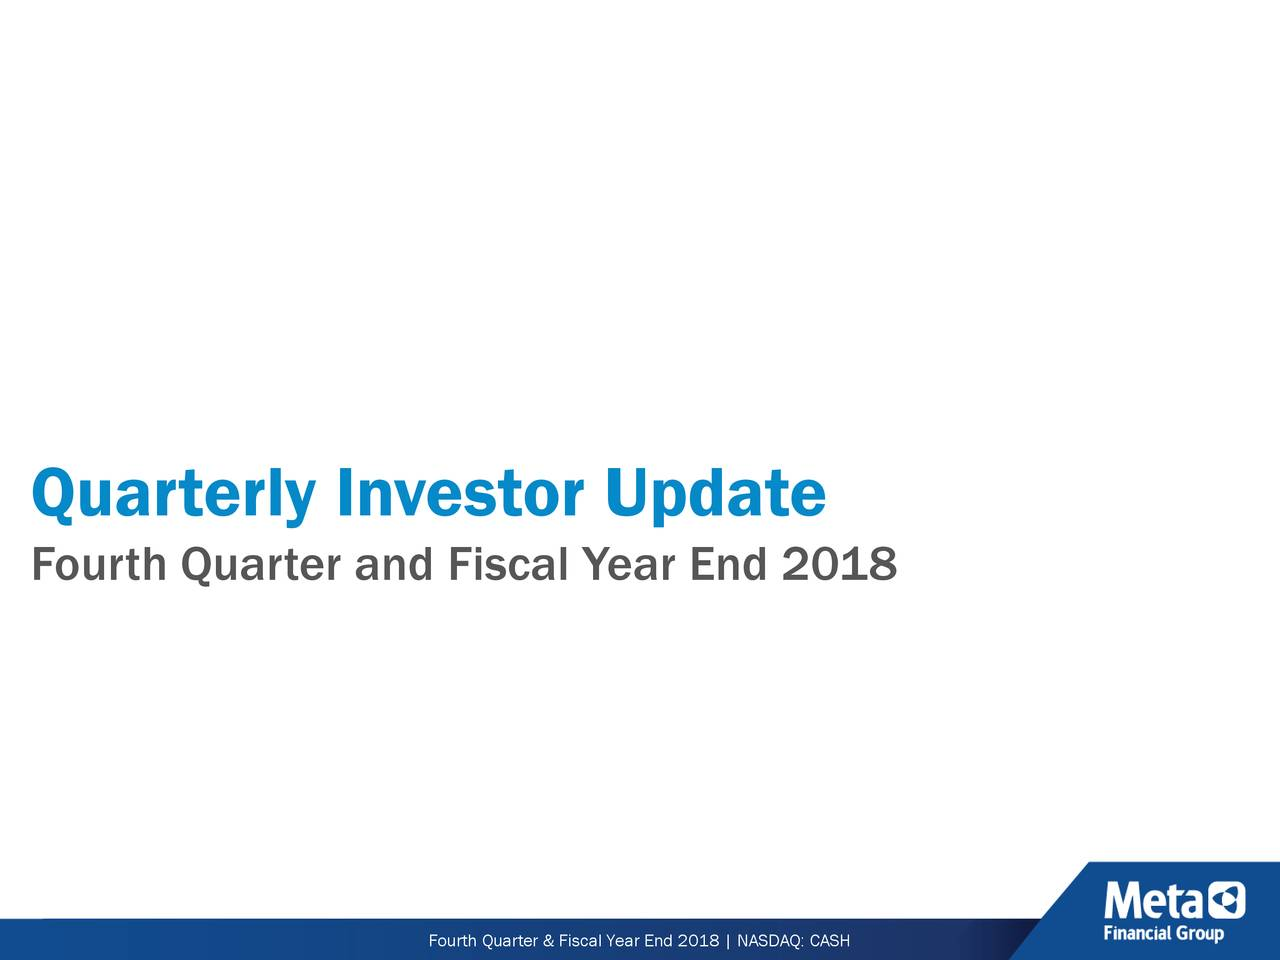 Fourth Quarter and Fiscal Year End 2018